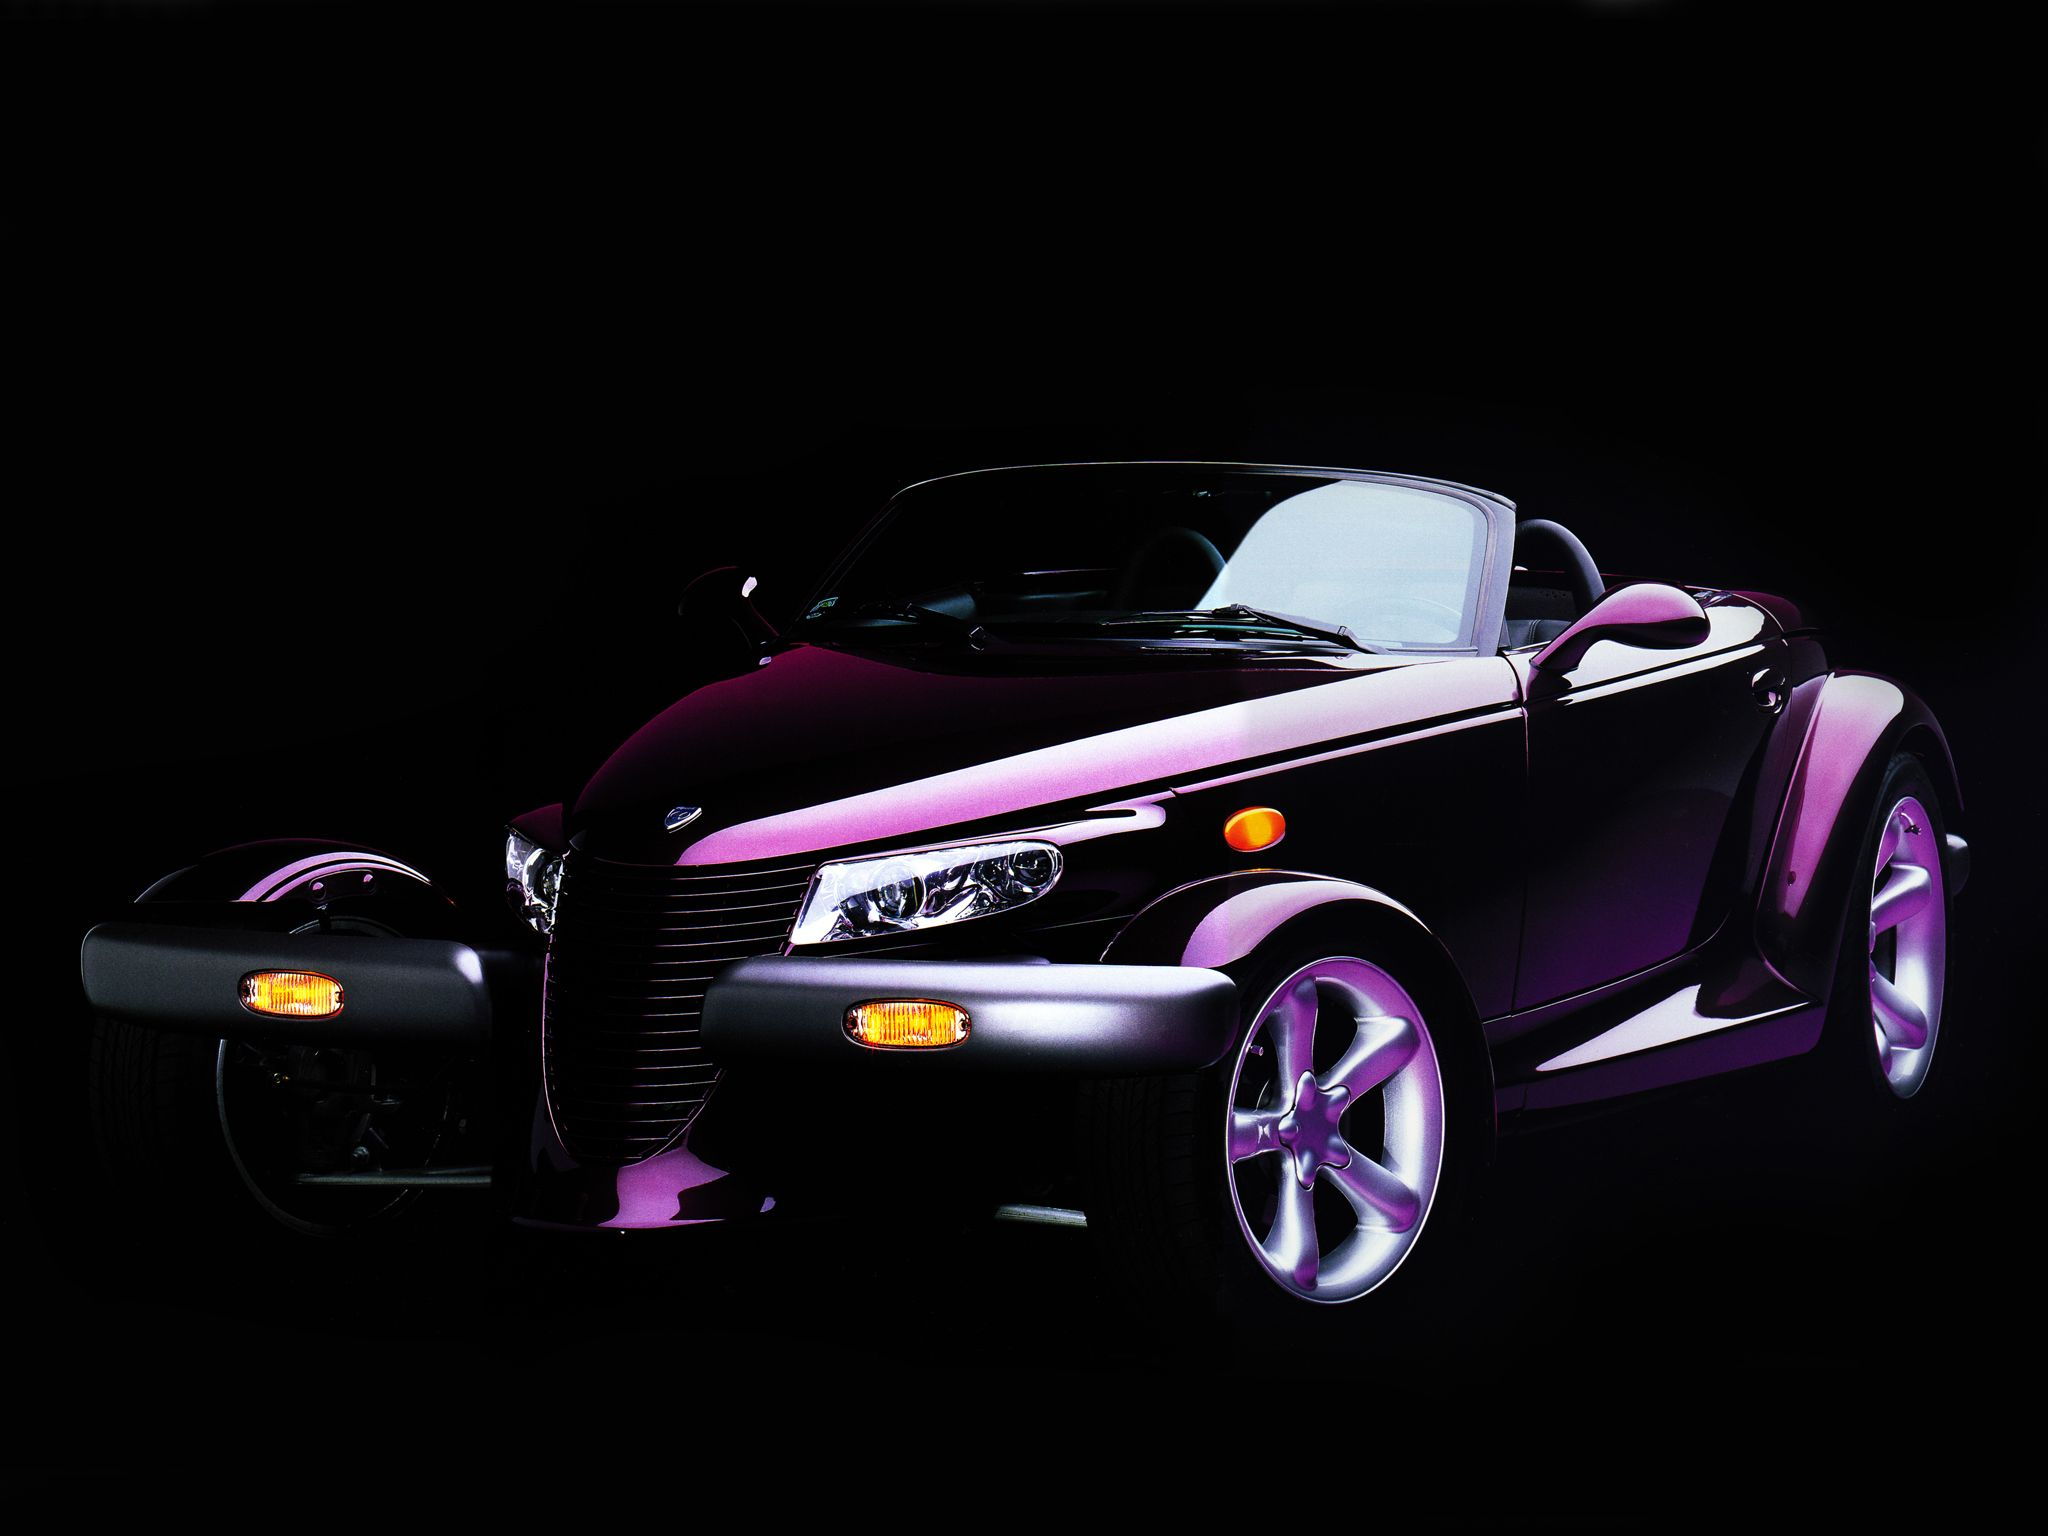 1997 Plymouth Prowler Plymouth Prowler High Performance Cars